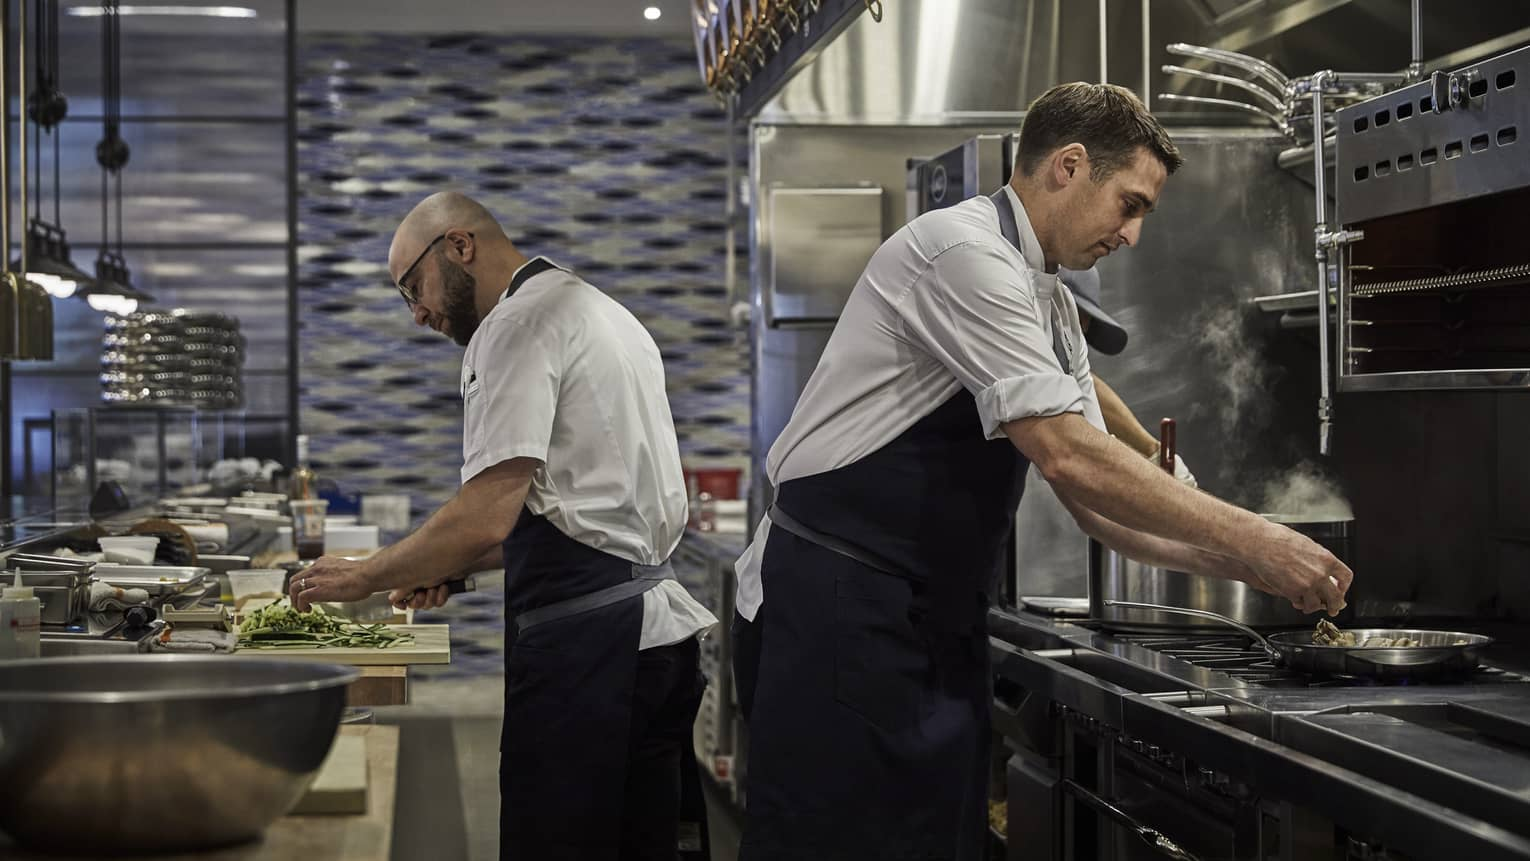 Chefs prepare meals in the kitchen of Four Seasons Philadelphia